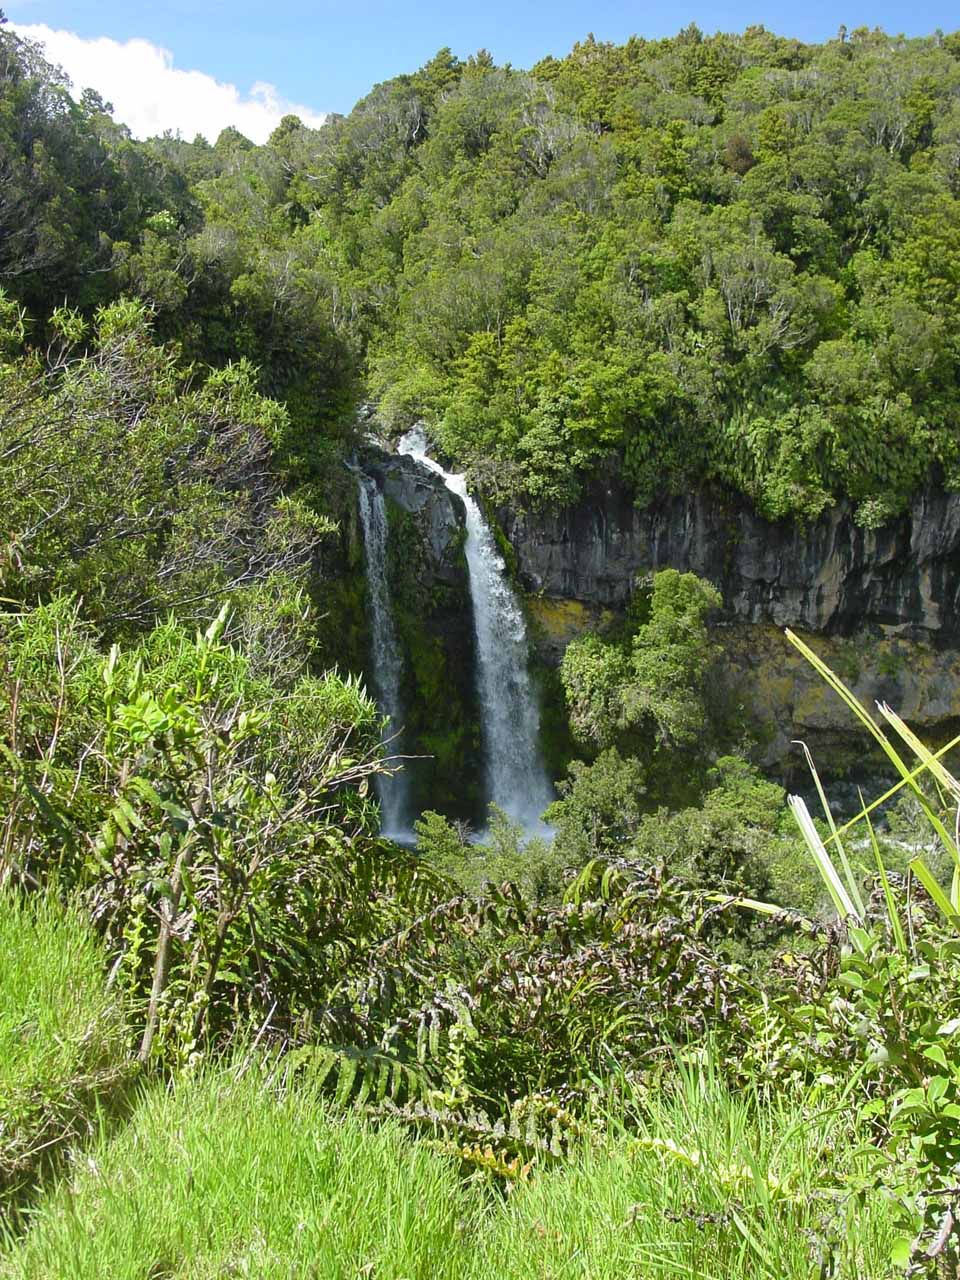 Dawson Falls viewed from further away on the Kapuni Loop